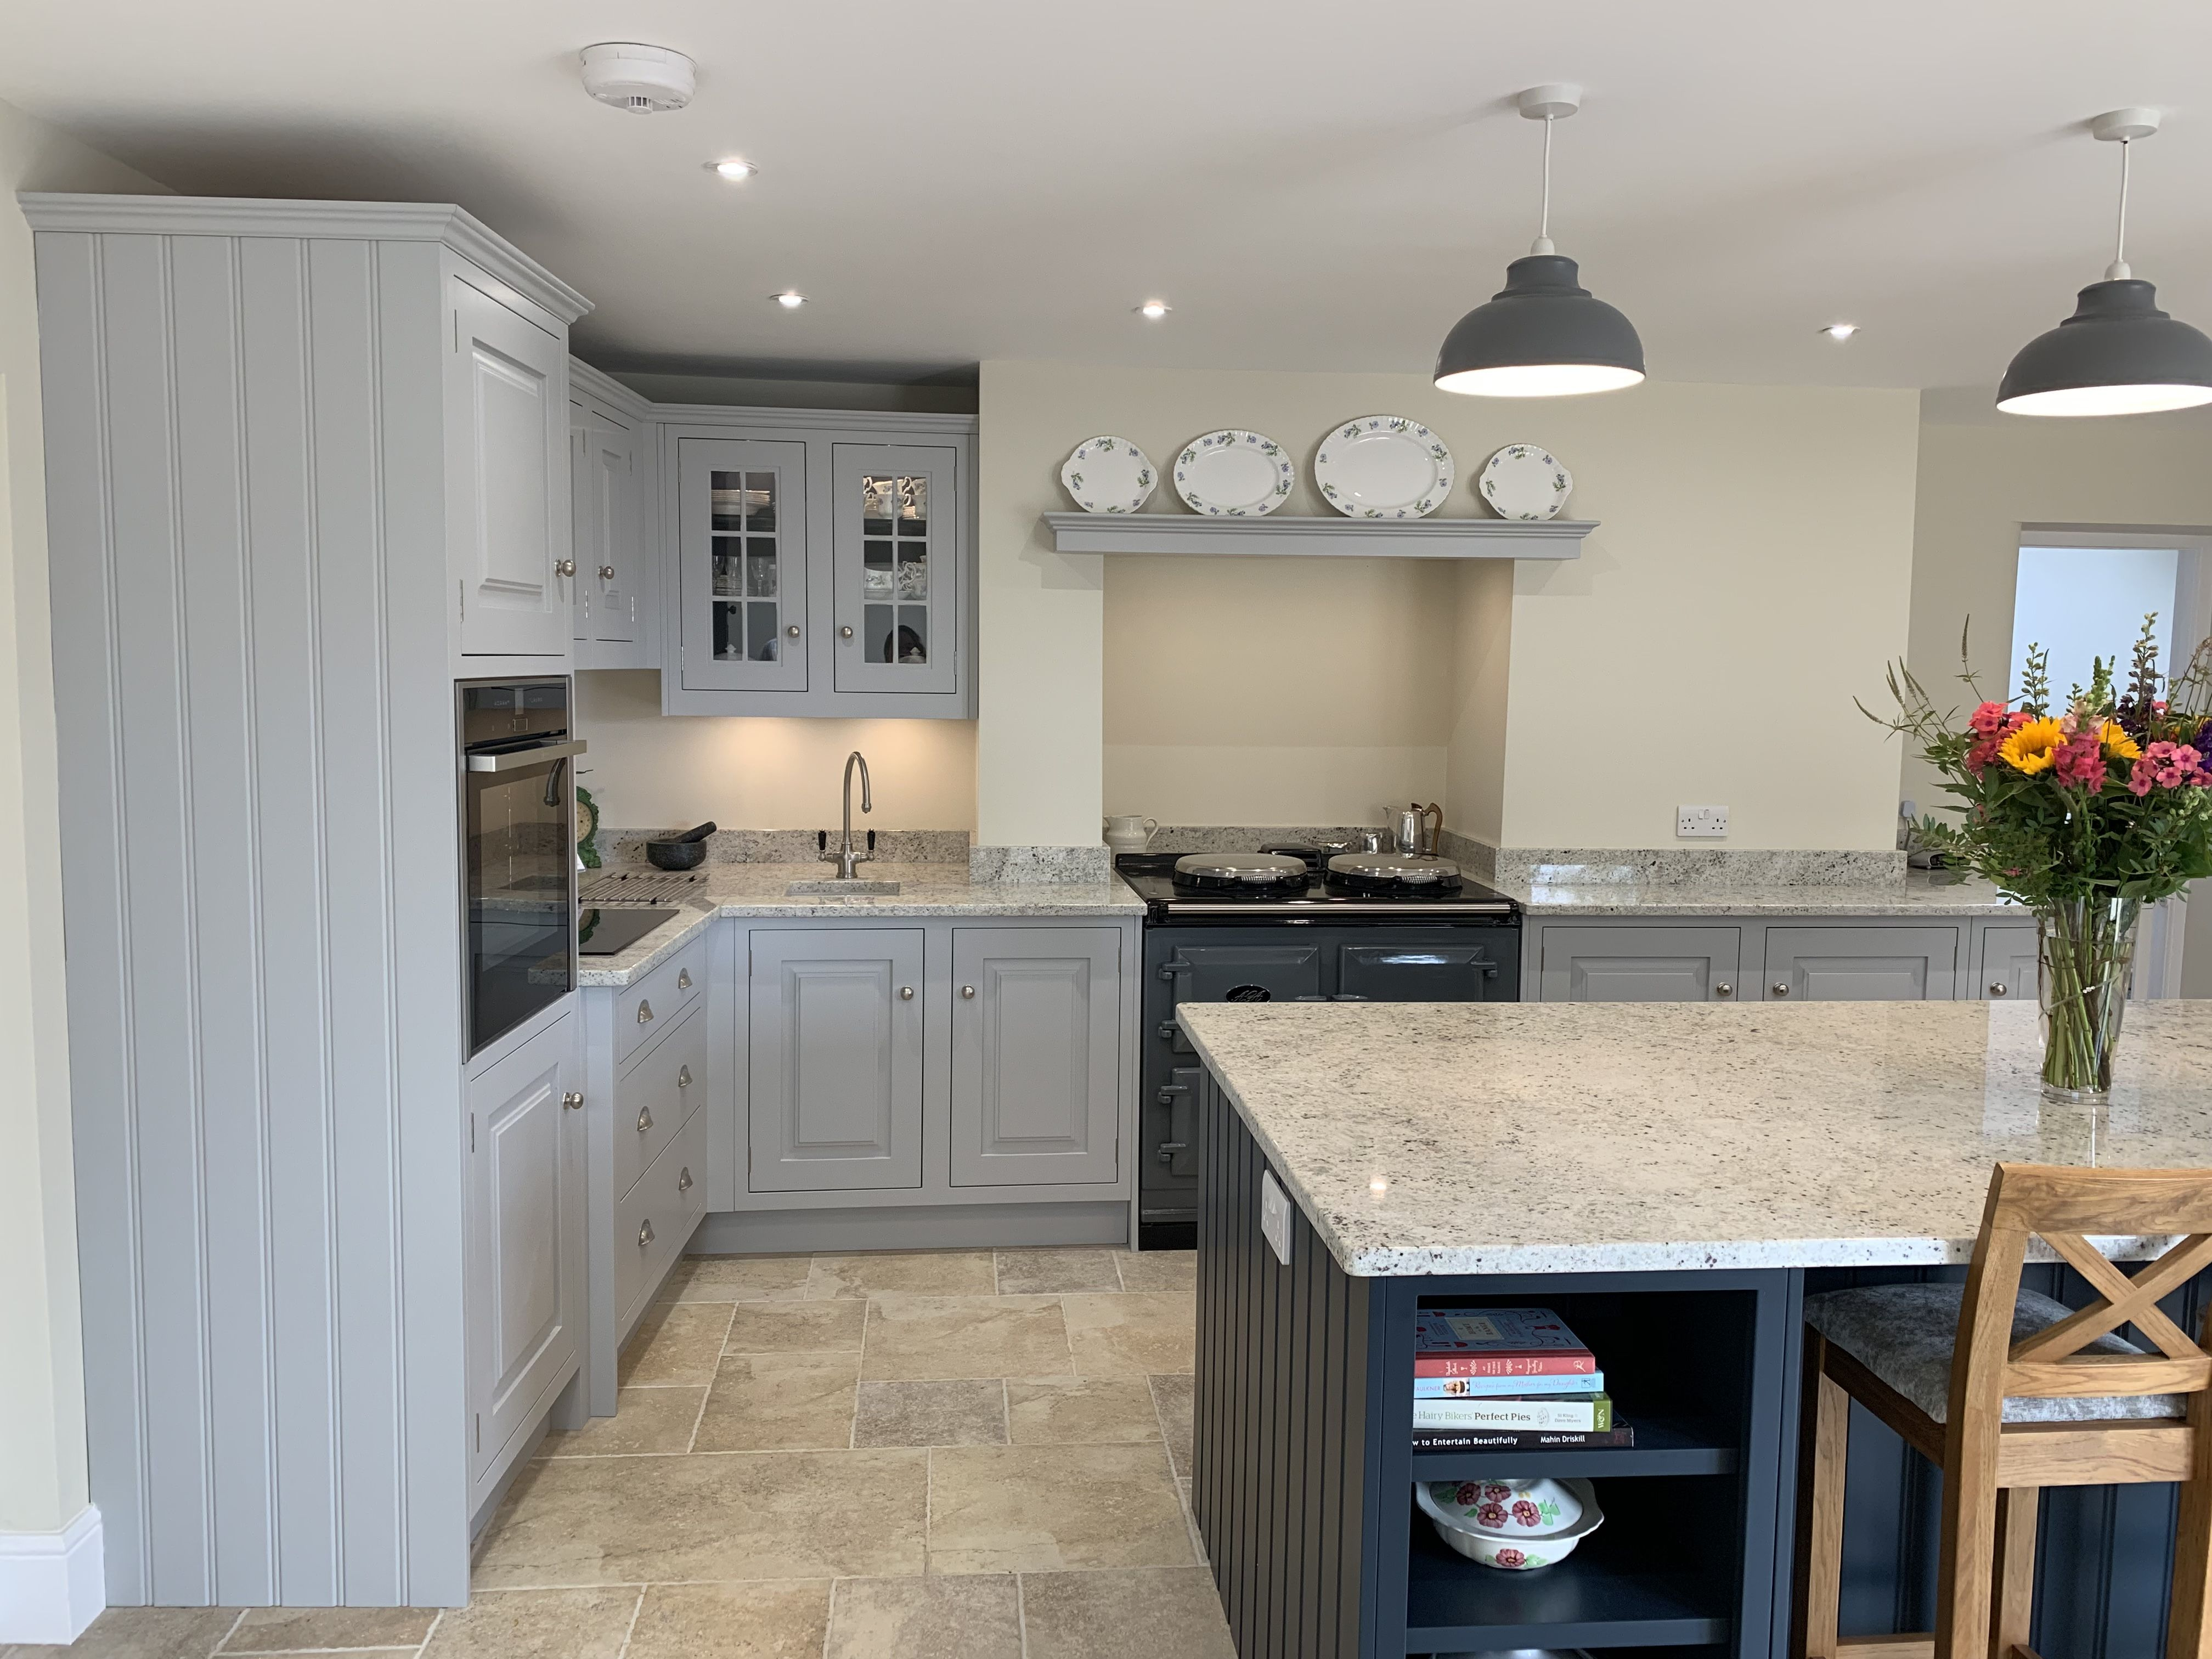 Traditional Kitchens image by John Lewis of Hungerford